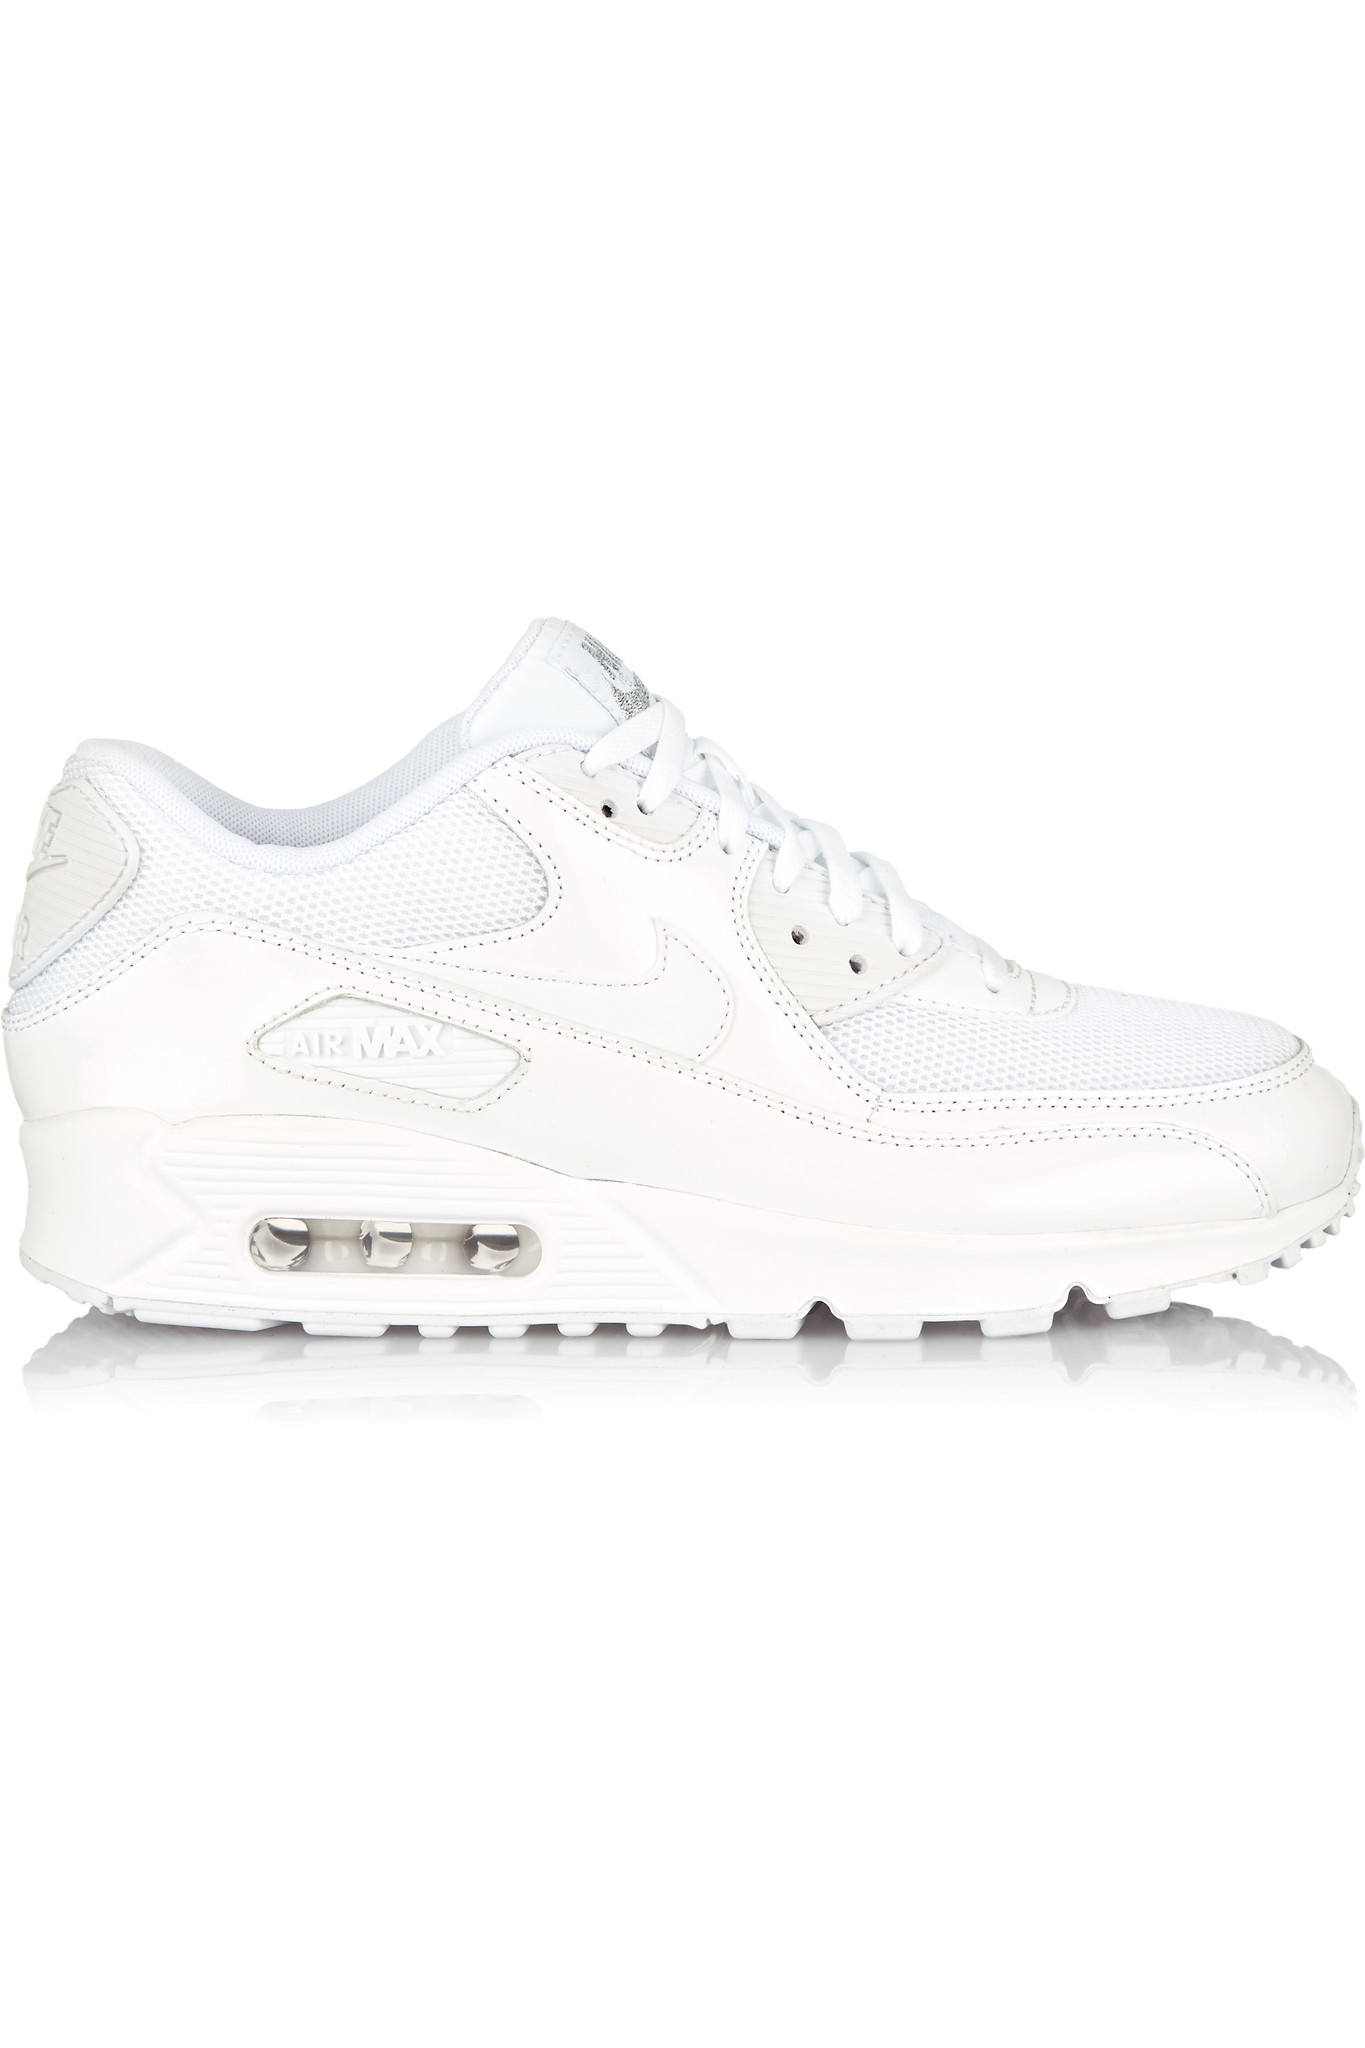 Nike Air Max 90 Premium Leather And Mesh Sneakers In White